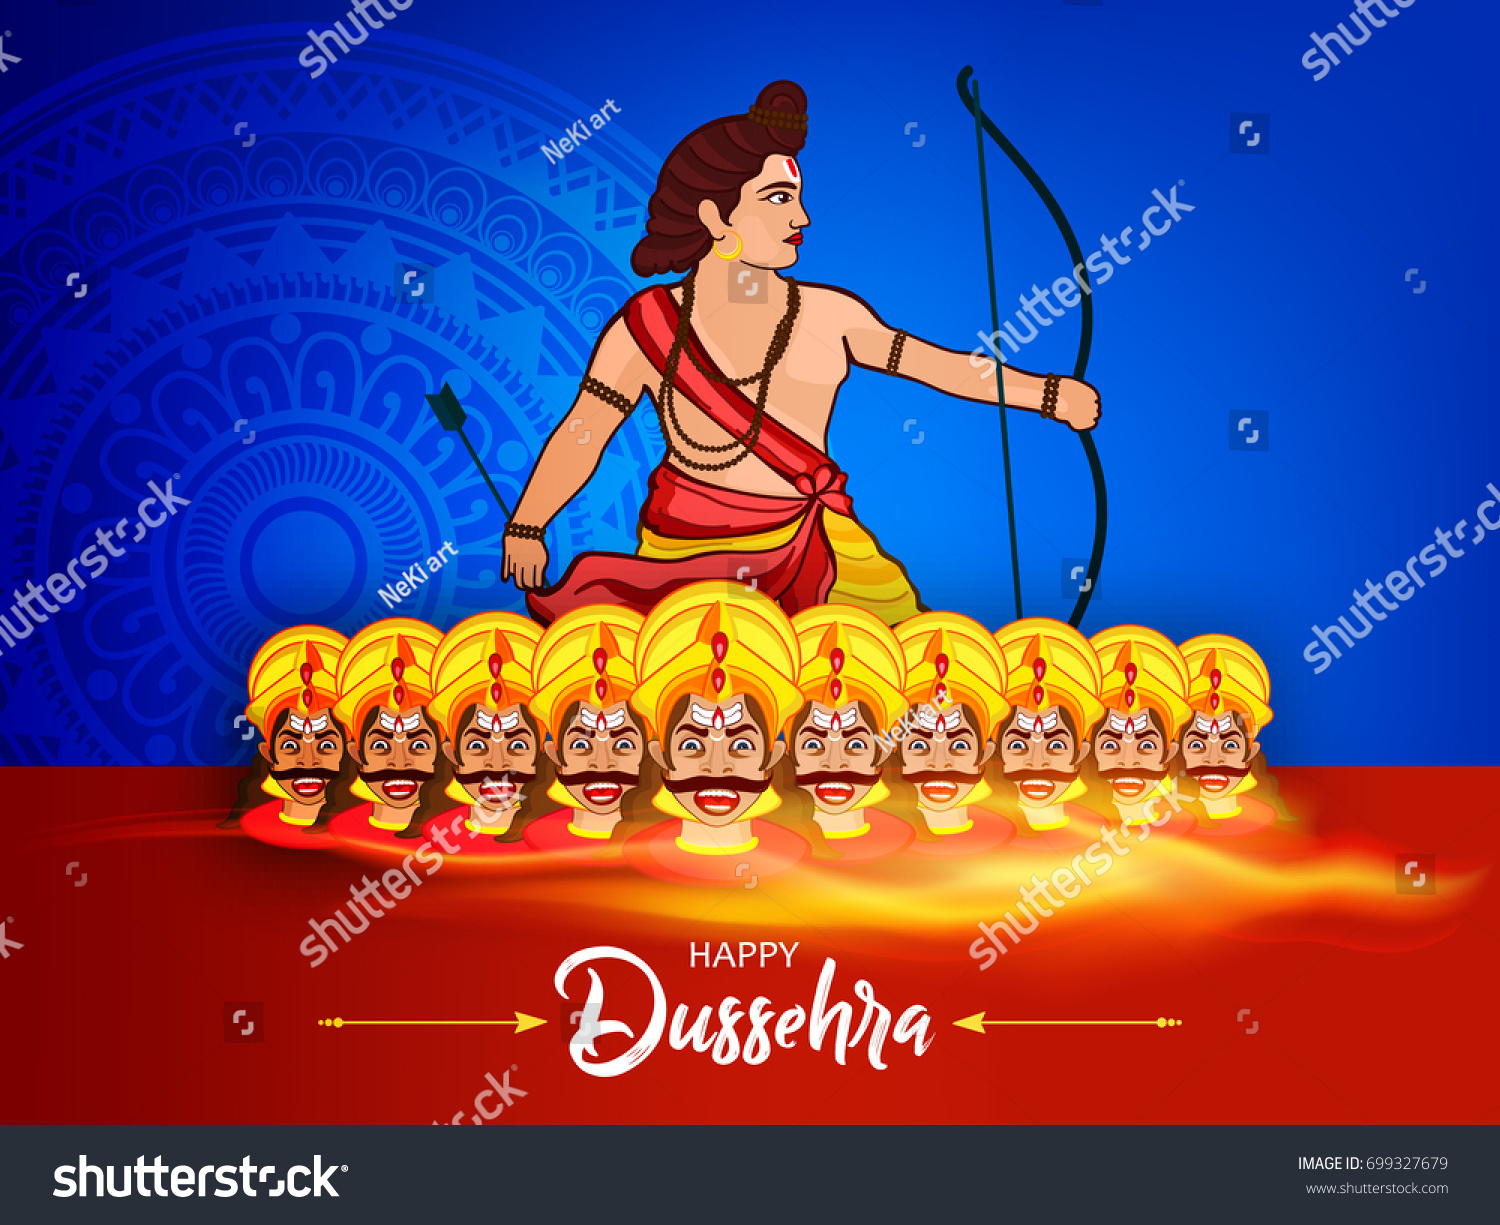 Beautiful greeting design on happy dussehra stock vector 699327679 beautiful greeting design on for happy dussehra vector illustration of ten faces of ravana with kristyandbryce Choice Image